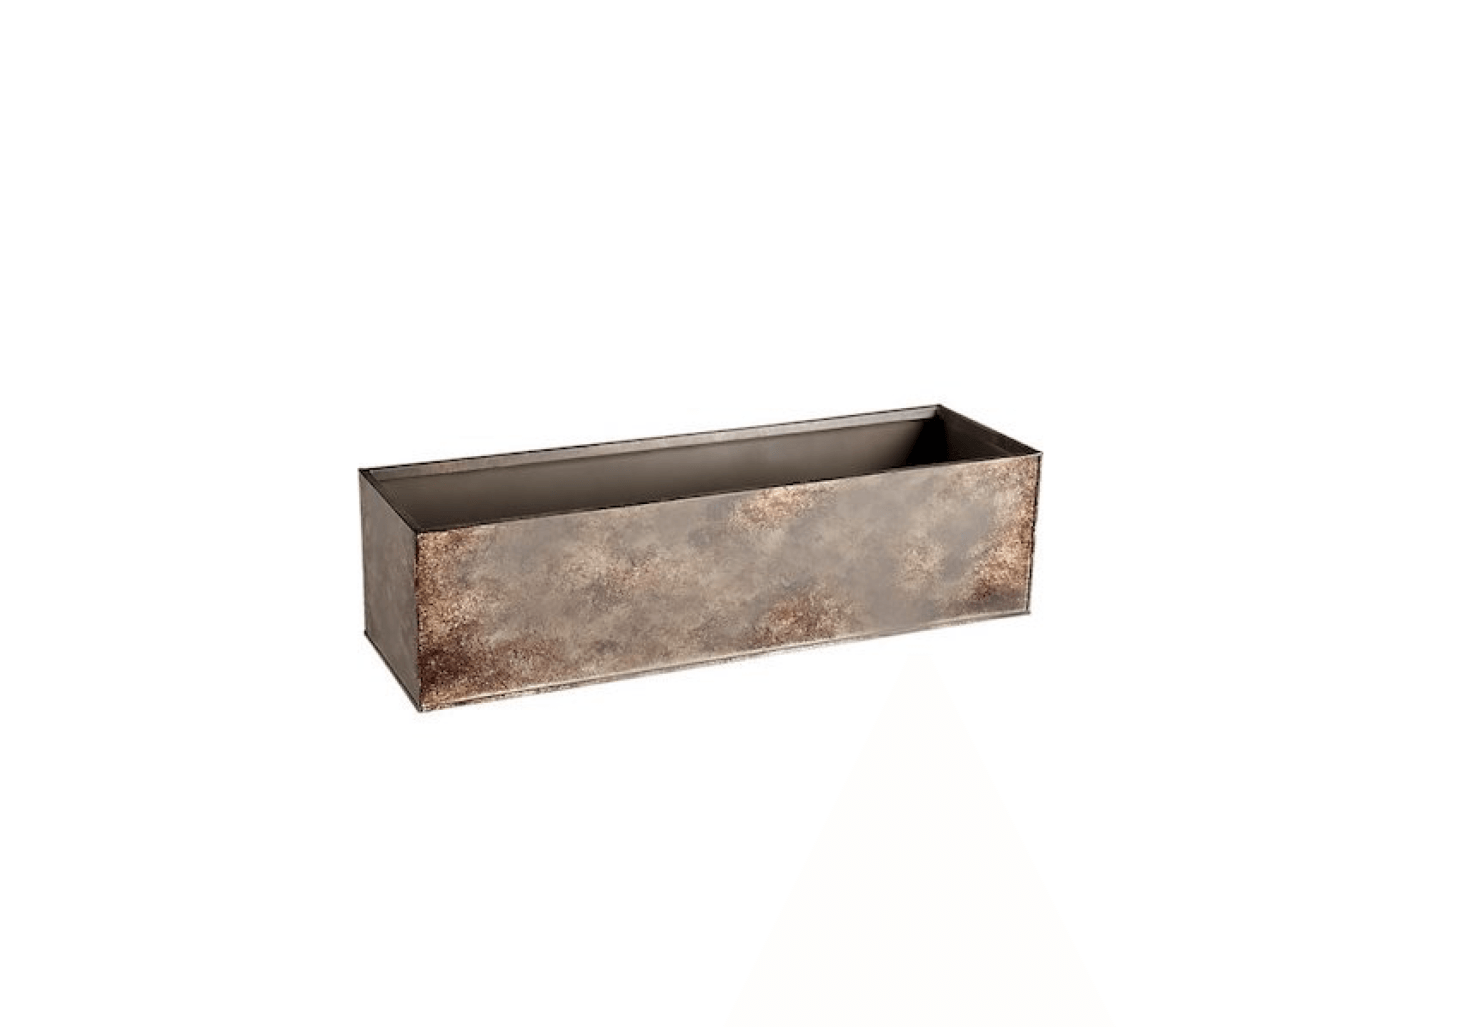 A .5-inch Girona Patina Rectangular Planter is made of galvanized steel with a nontoxic paint to simulate a Cor-ten steel finish. It is $.95 from CB